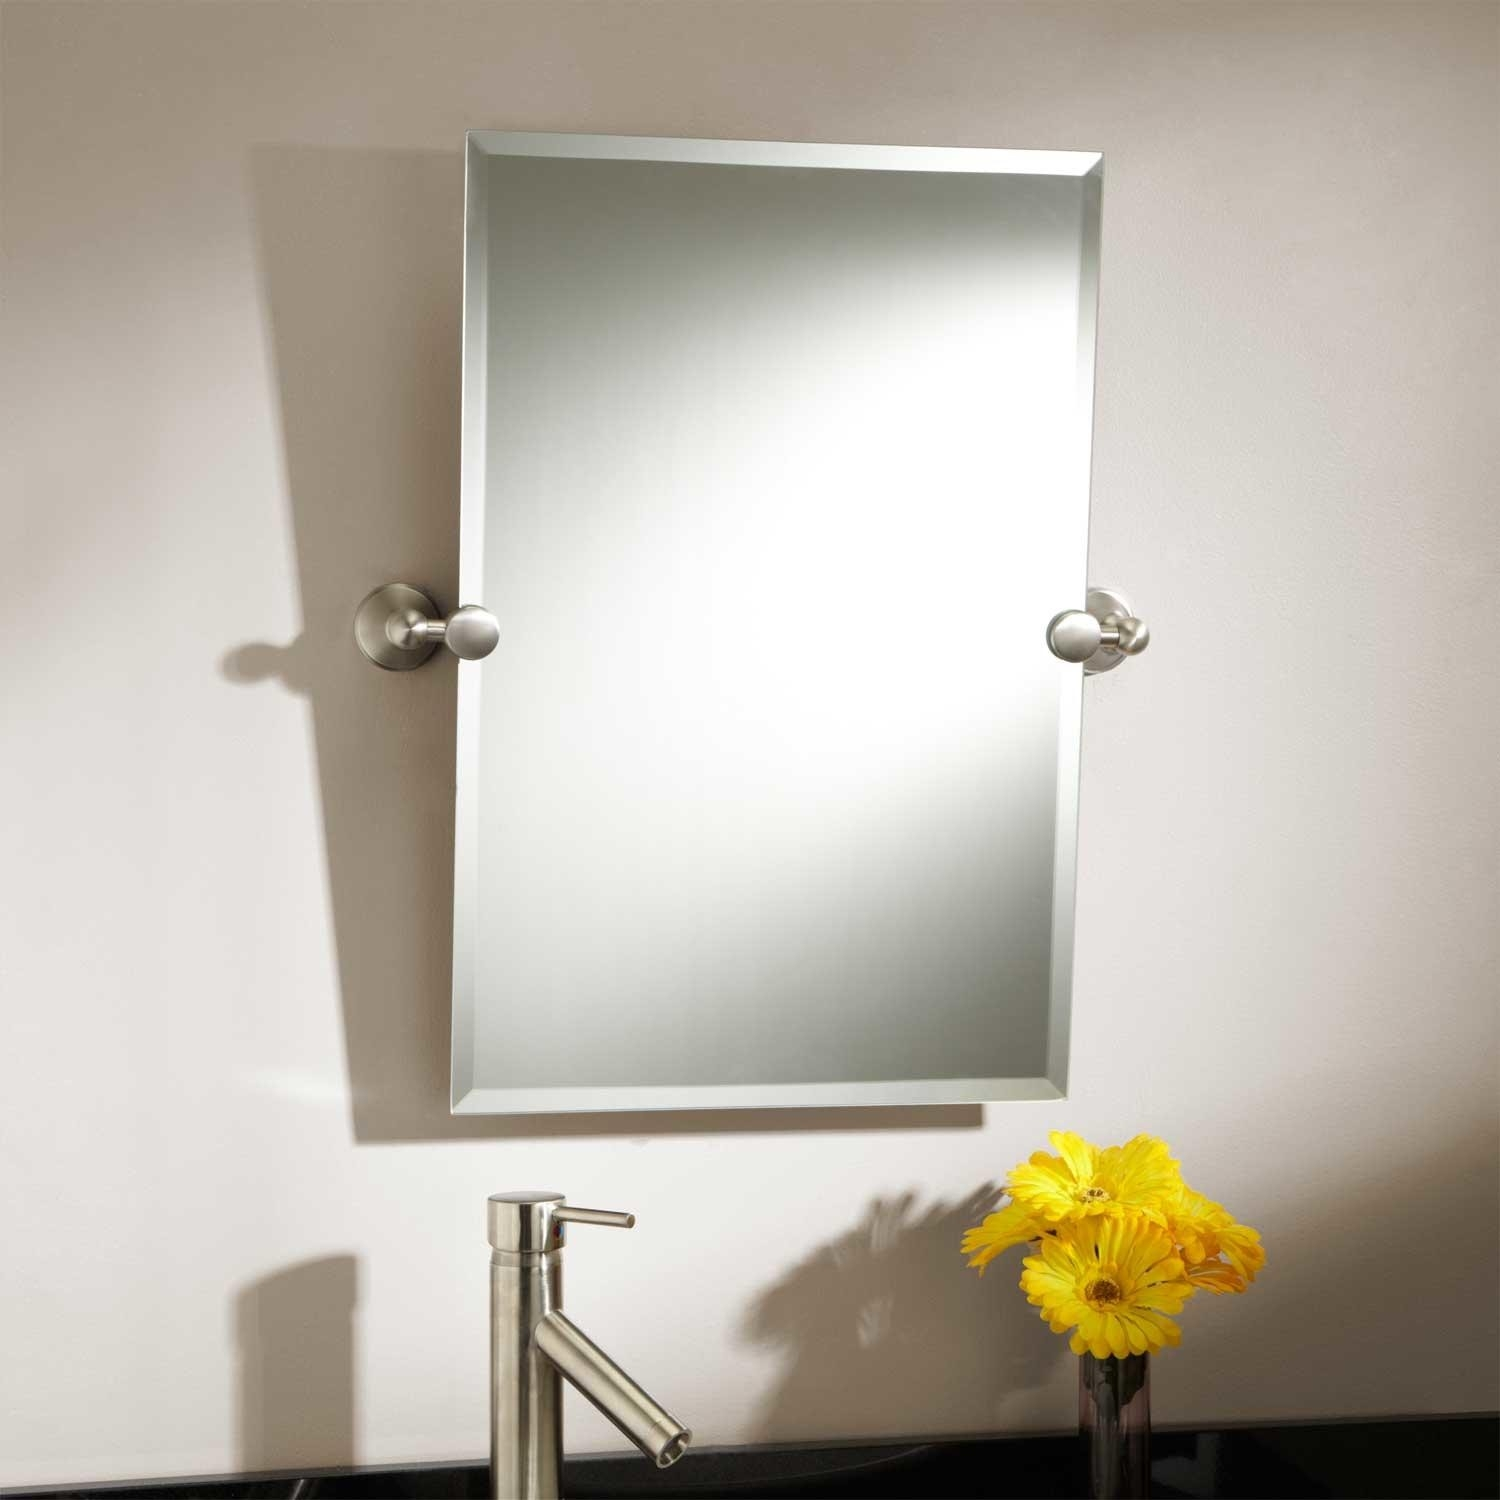 Tilting Bathroom Mirror Brushed Nickel24 seattle rectangular tilting mirror bathroom